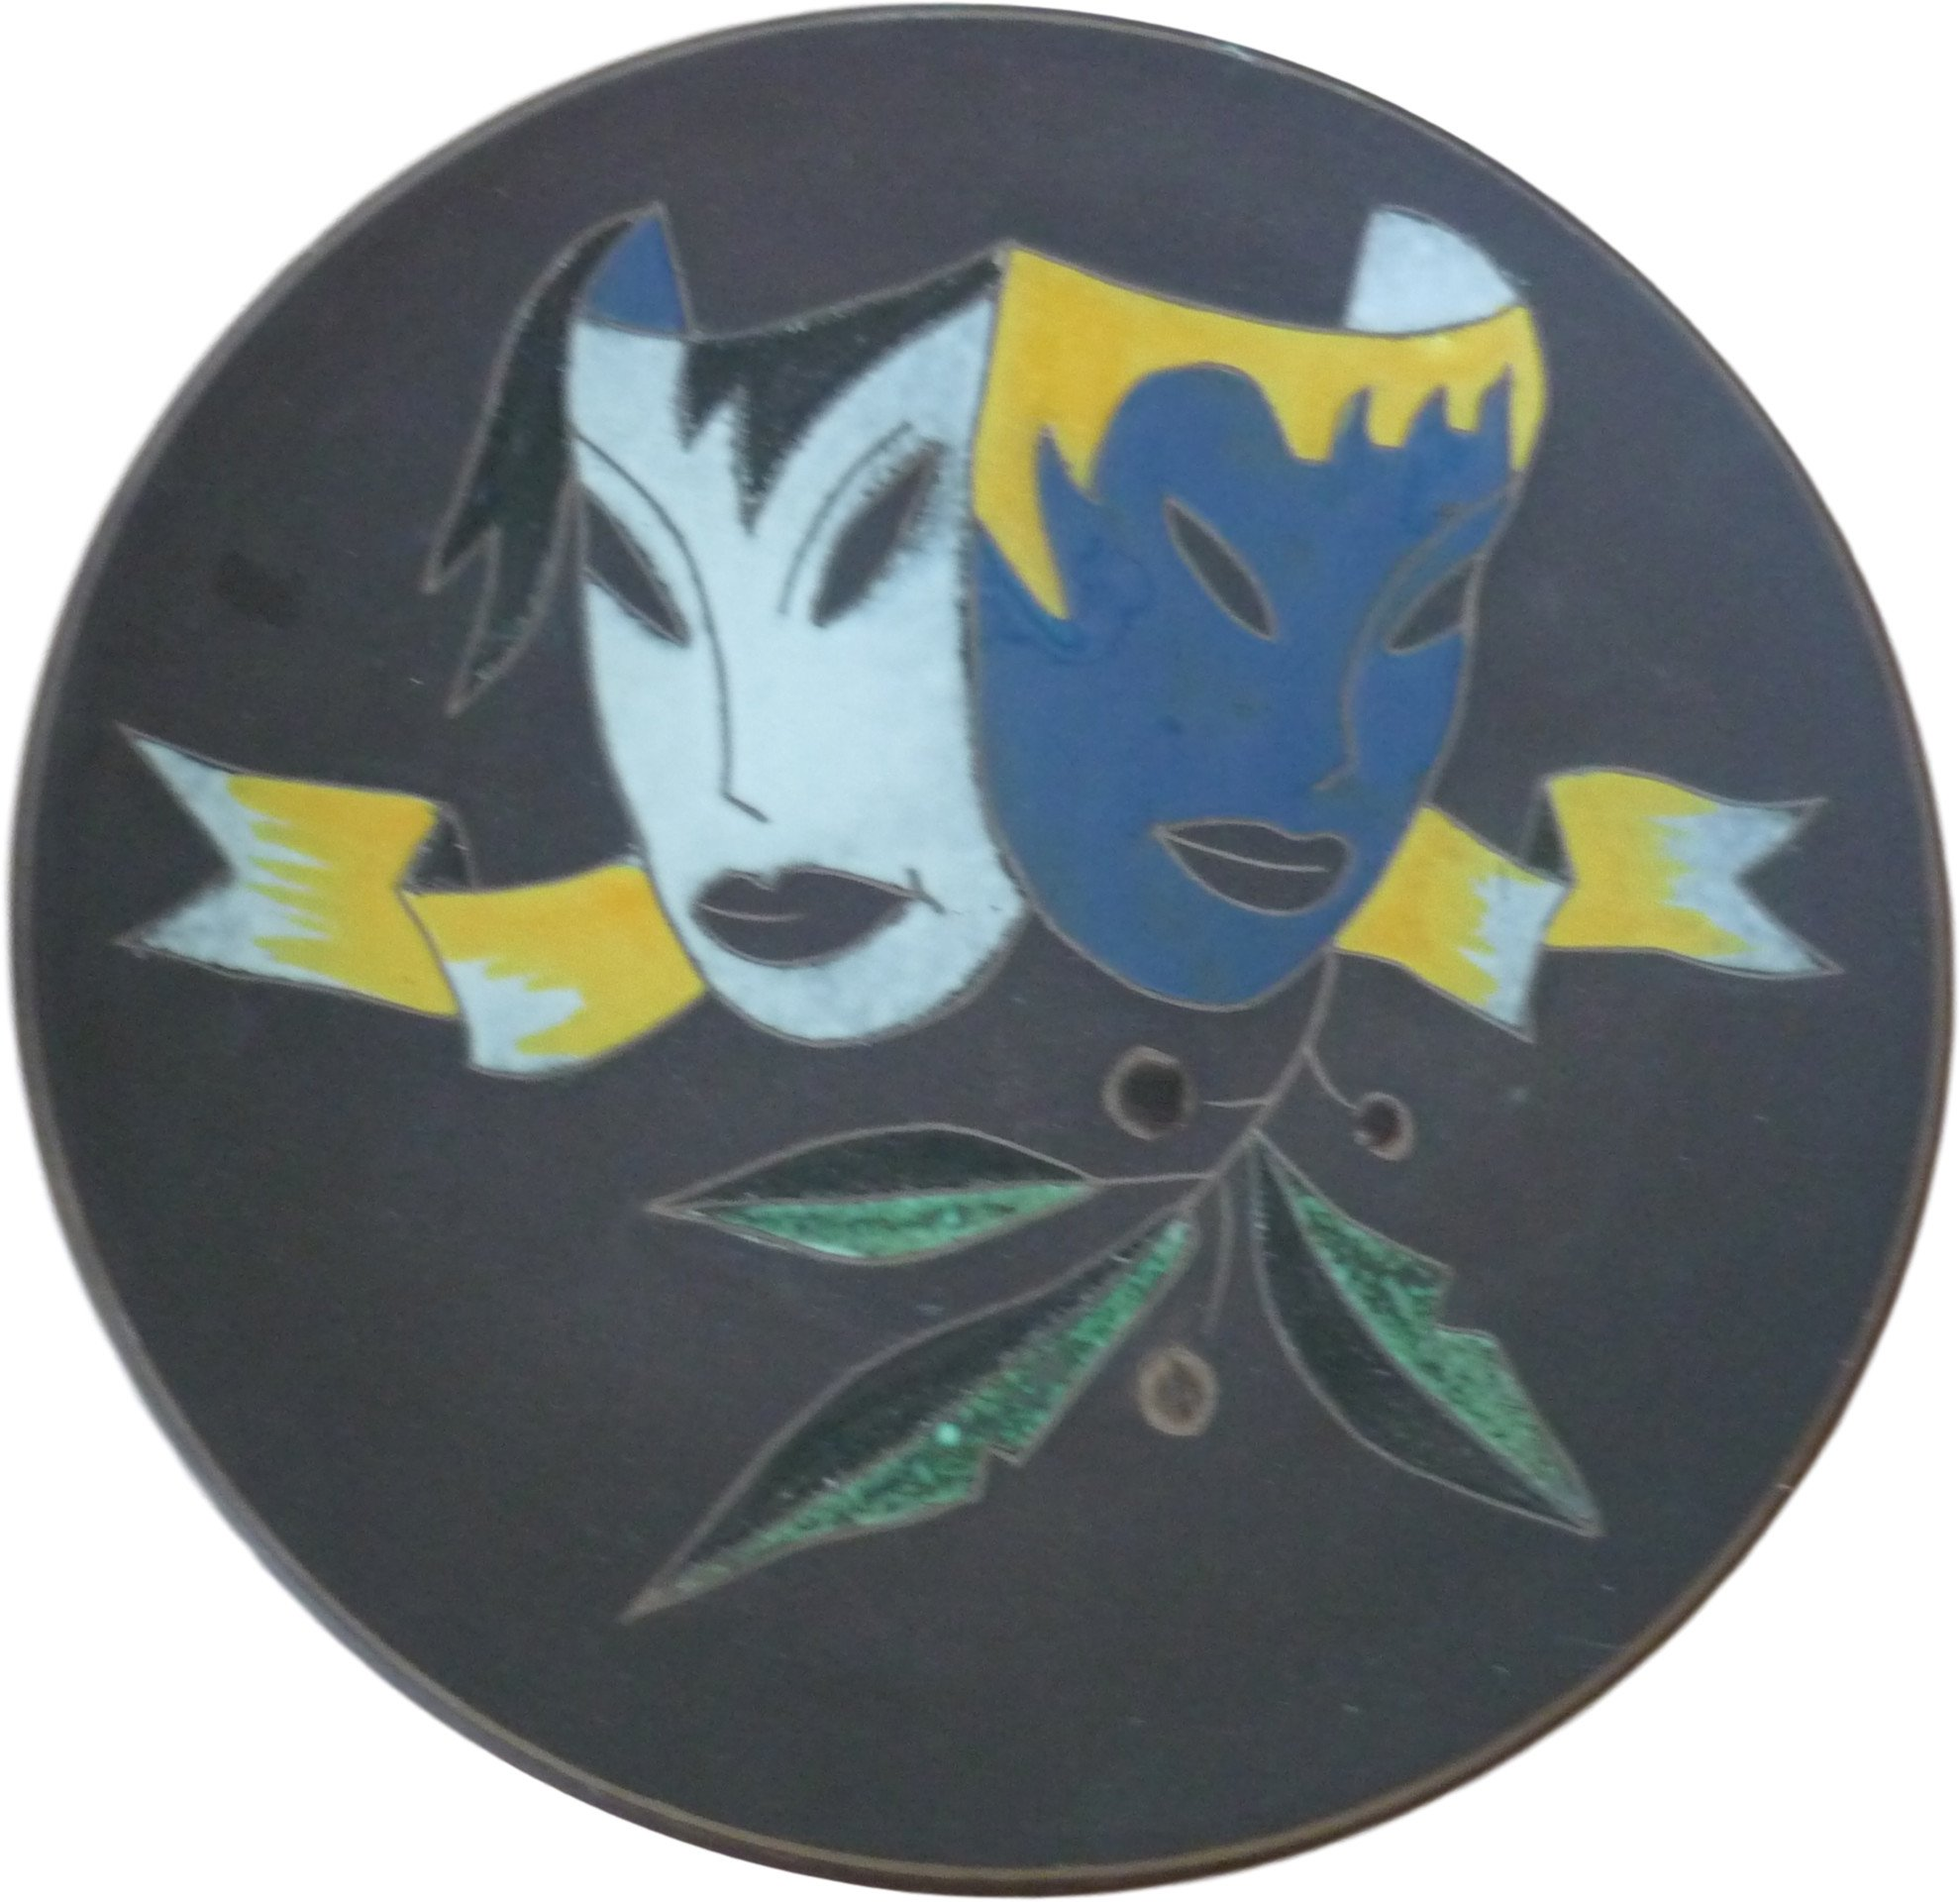 Plate, Germany, 1950s